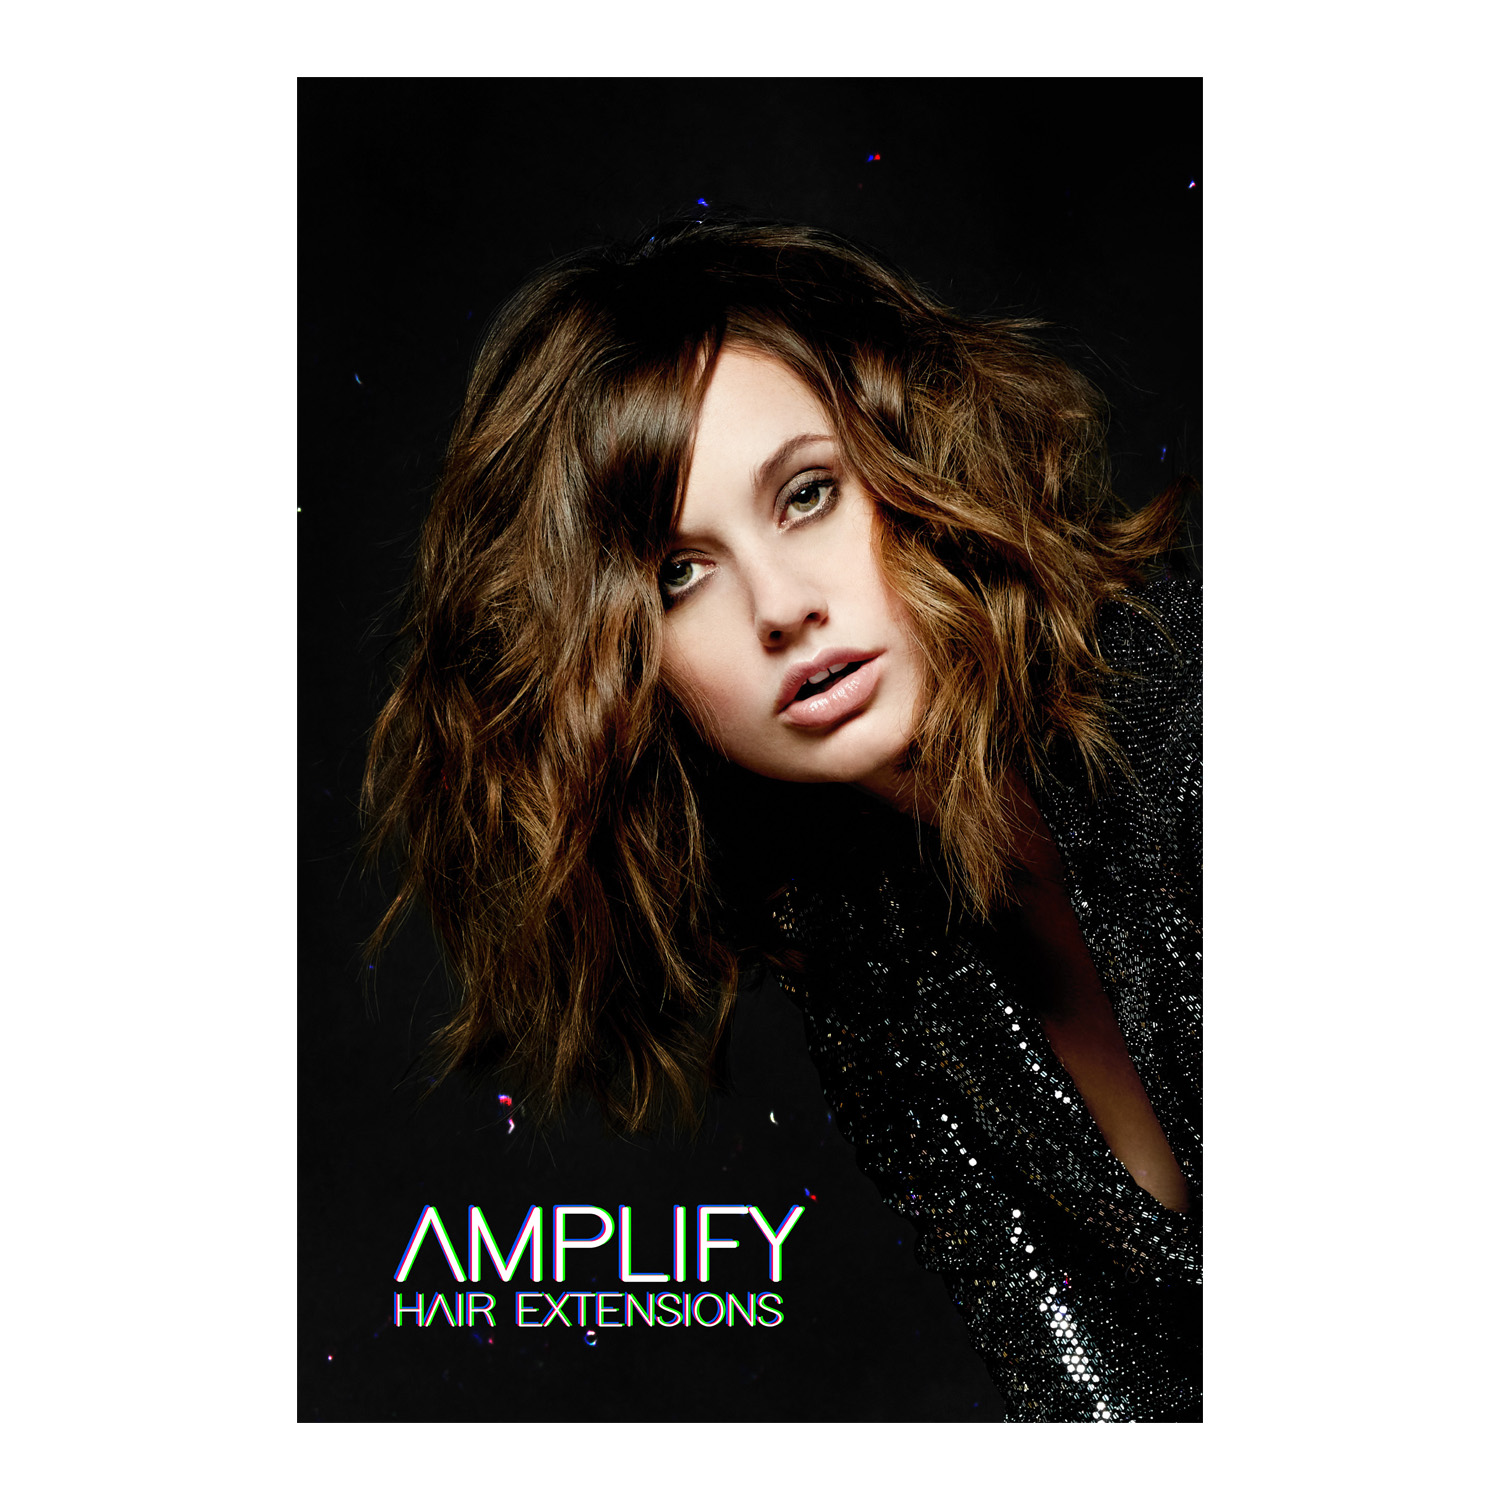 Amplify Poster